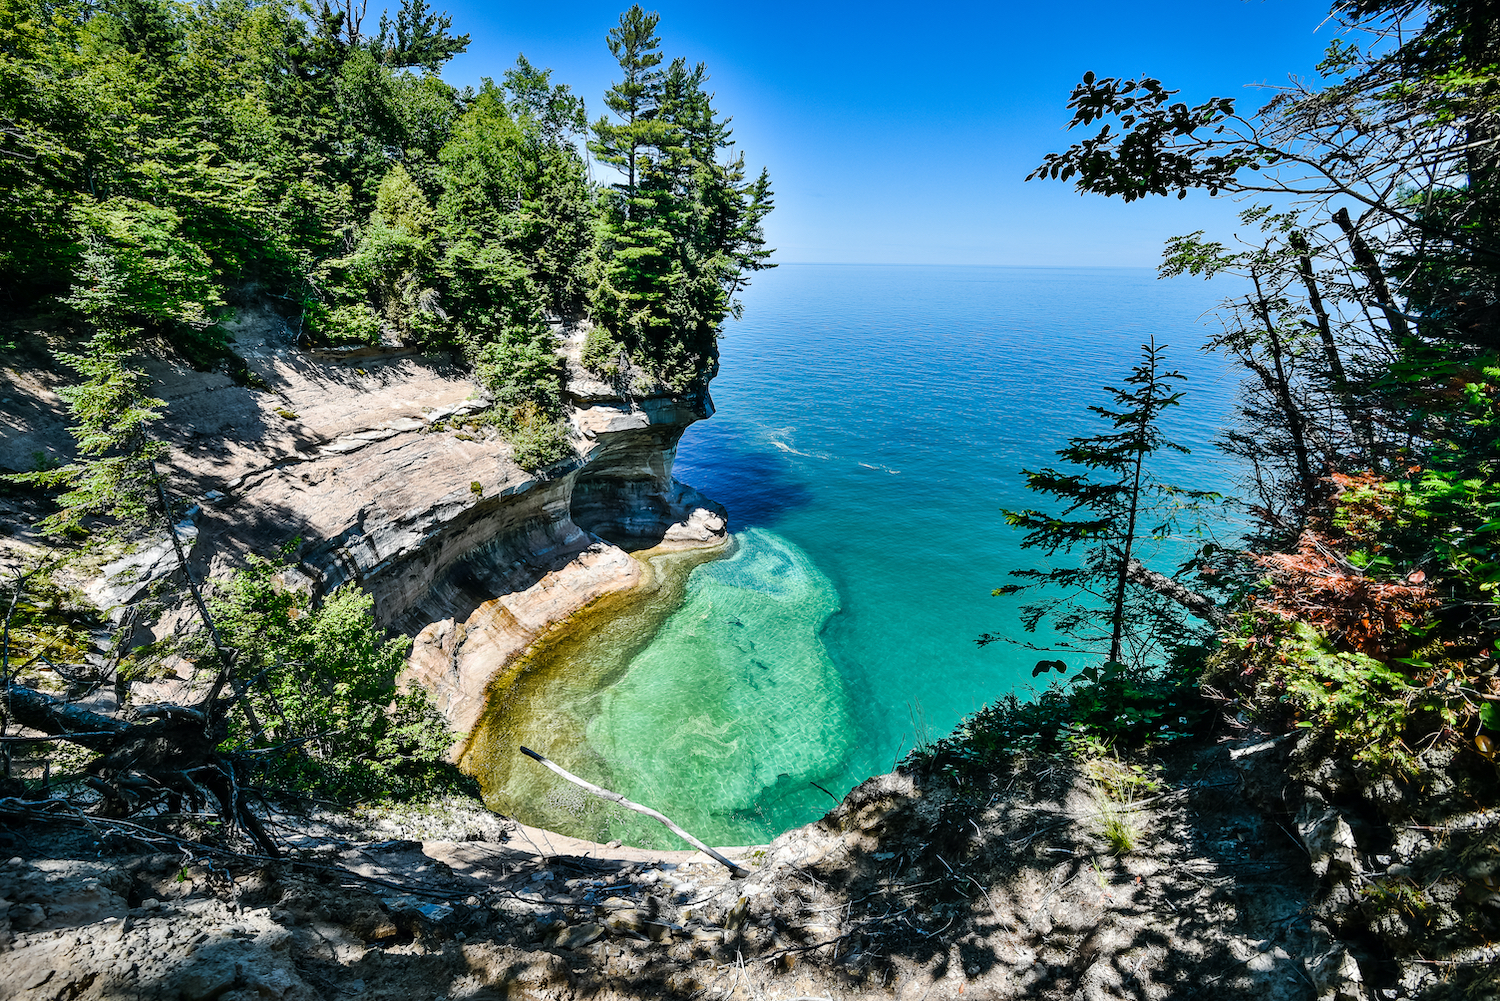 Pictured Rocks National Lakeshore water